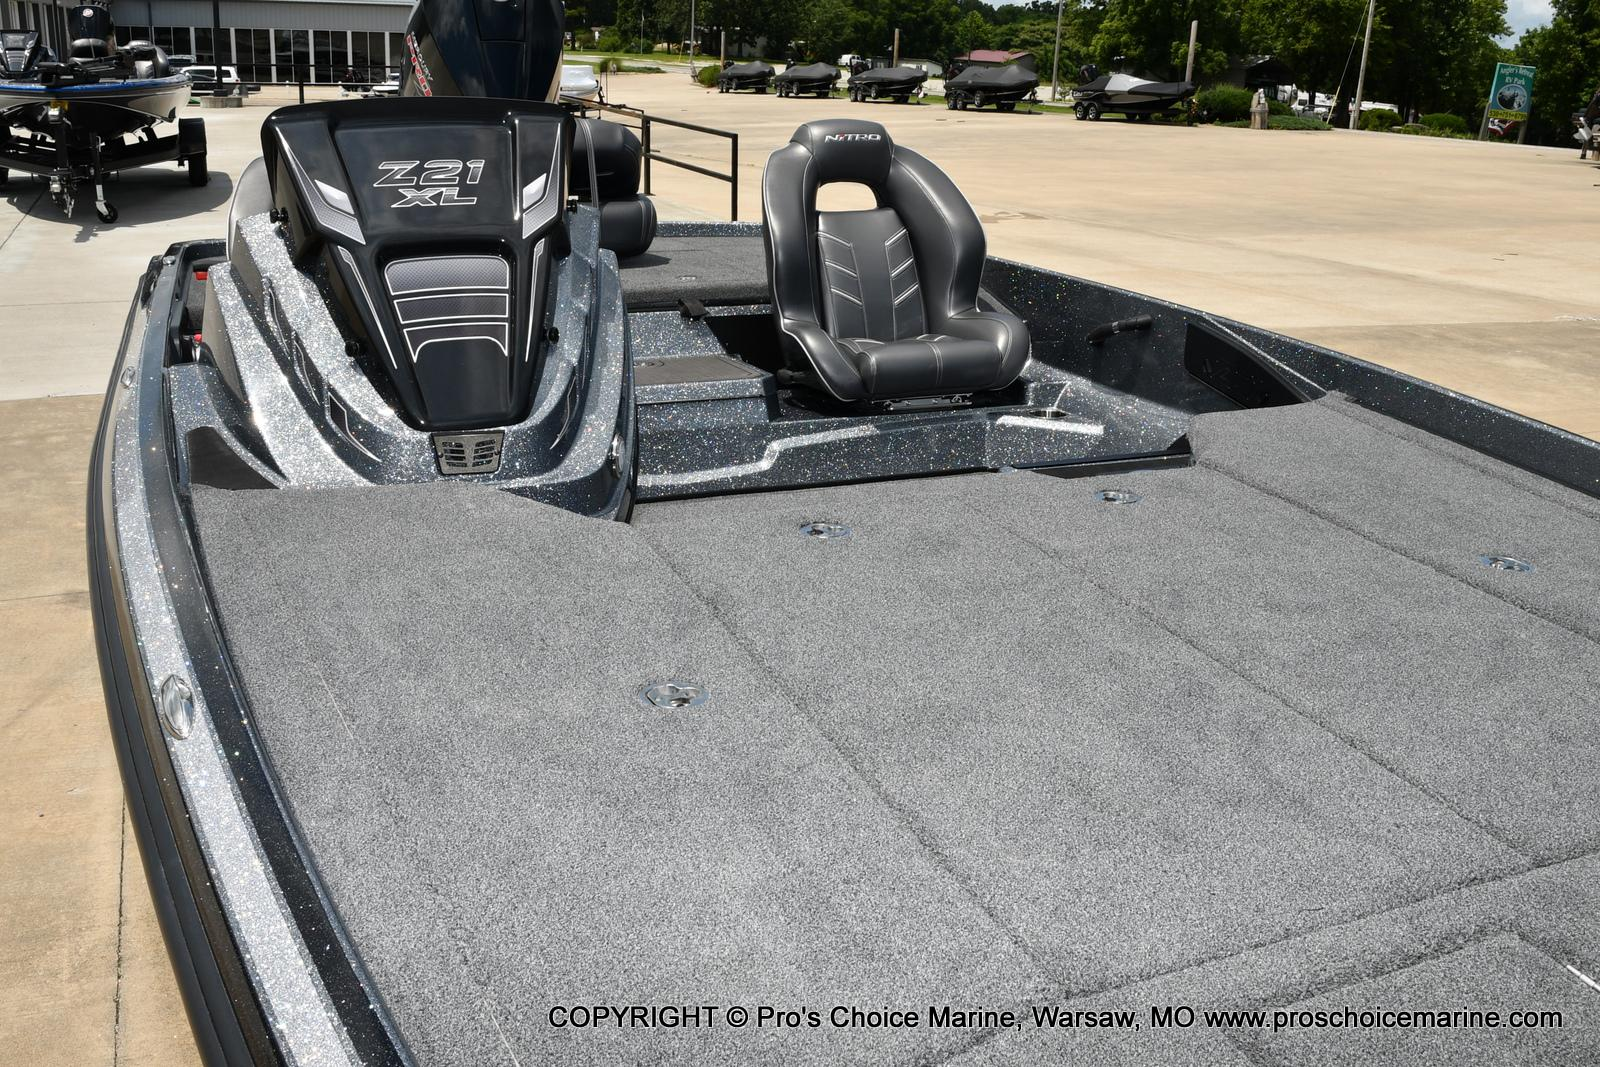 2022 Nitro boat for sale, model of the boat is Z21 XL Pro Pack & Image # 7 of 50